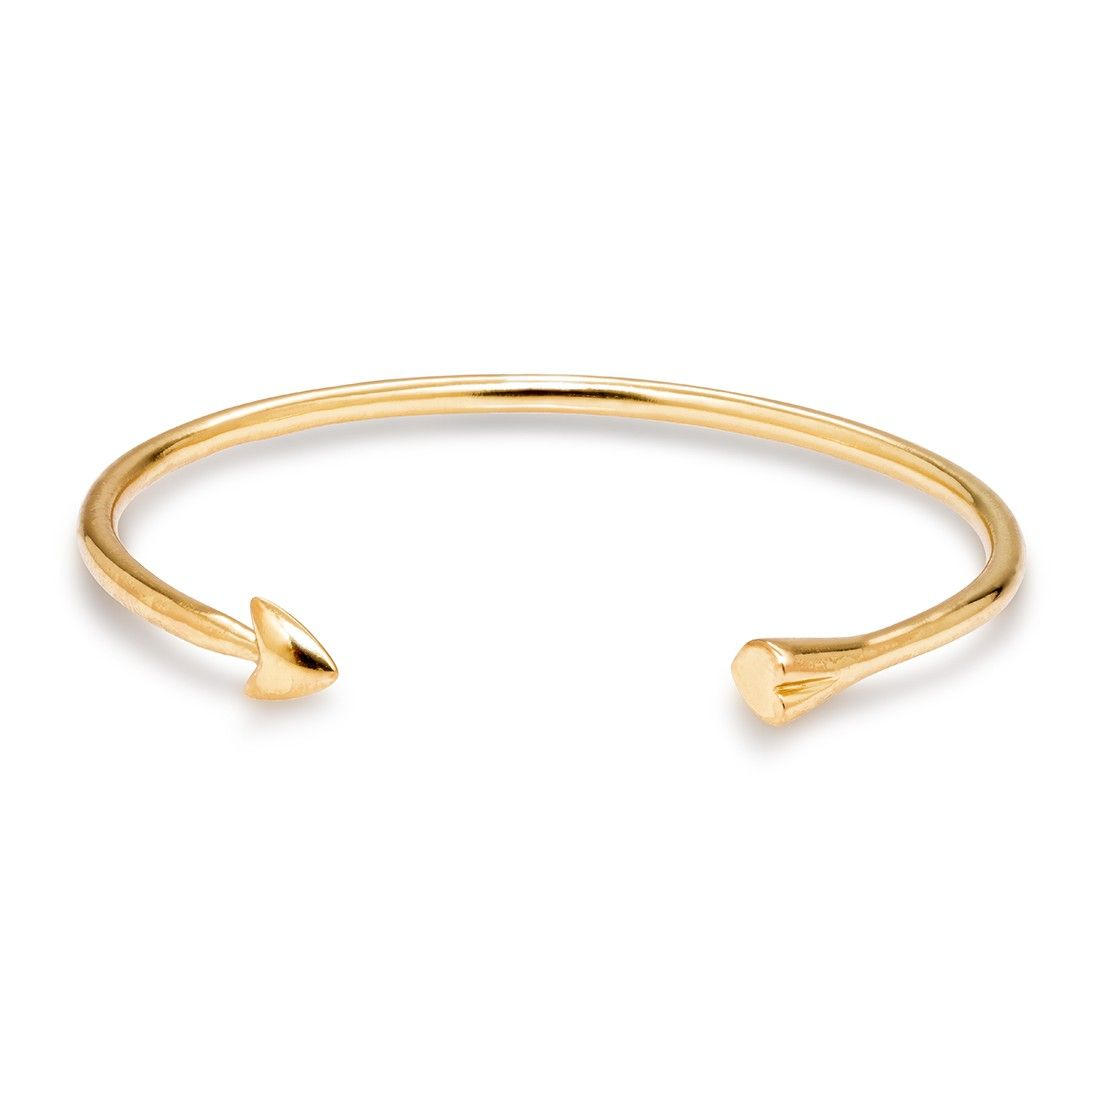 women gold tone for wide impl bangle nail sabrinasilver fits shopcart head screw steel bracelet bracelets stainless product oval